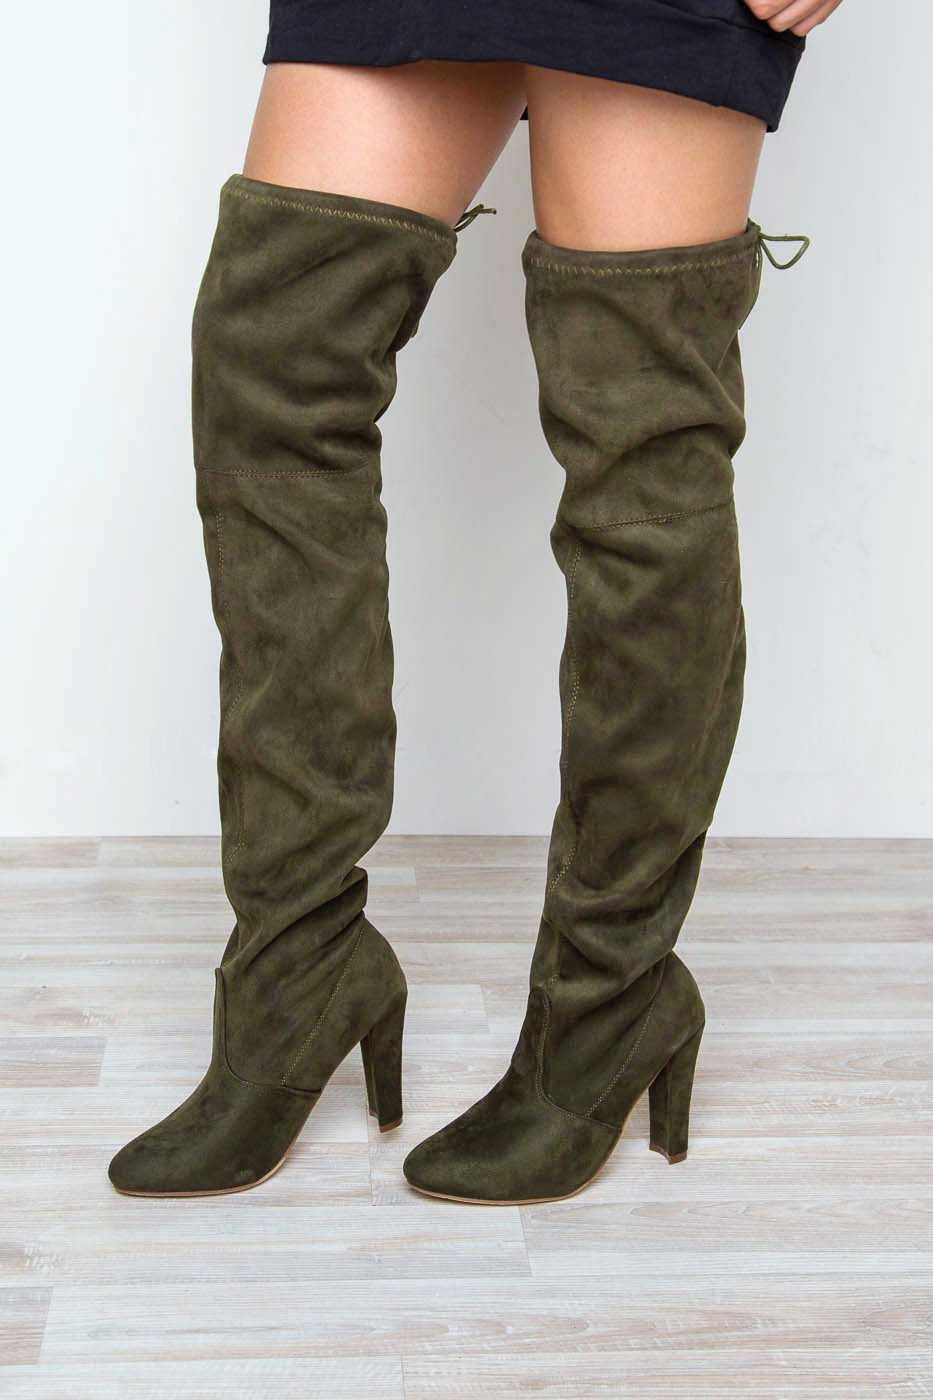 57a27b027f4 ... Boots - Showdown Thigh High Boots - Olive ...